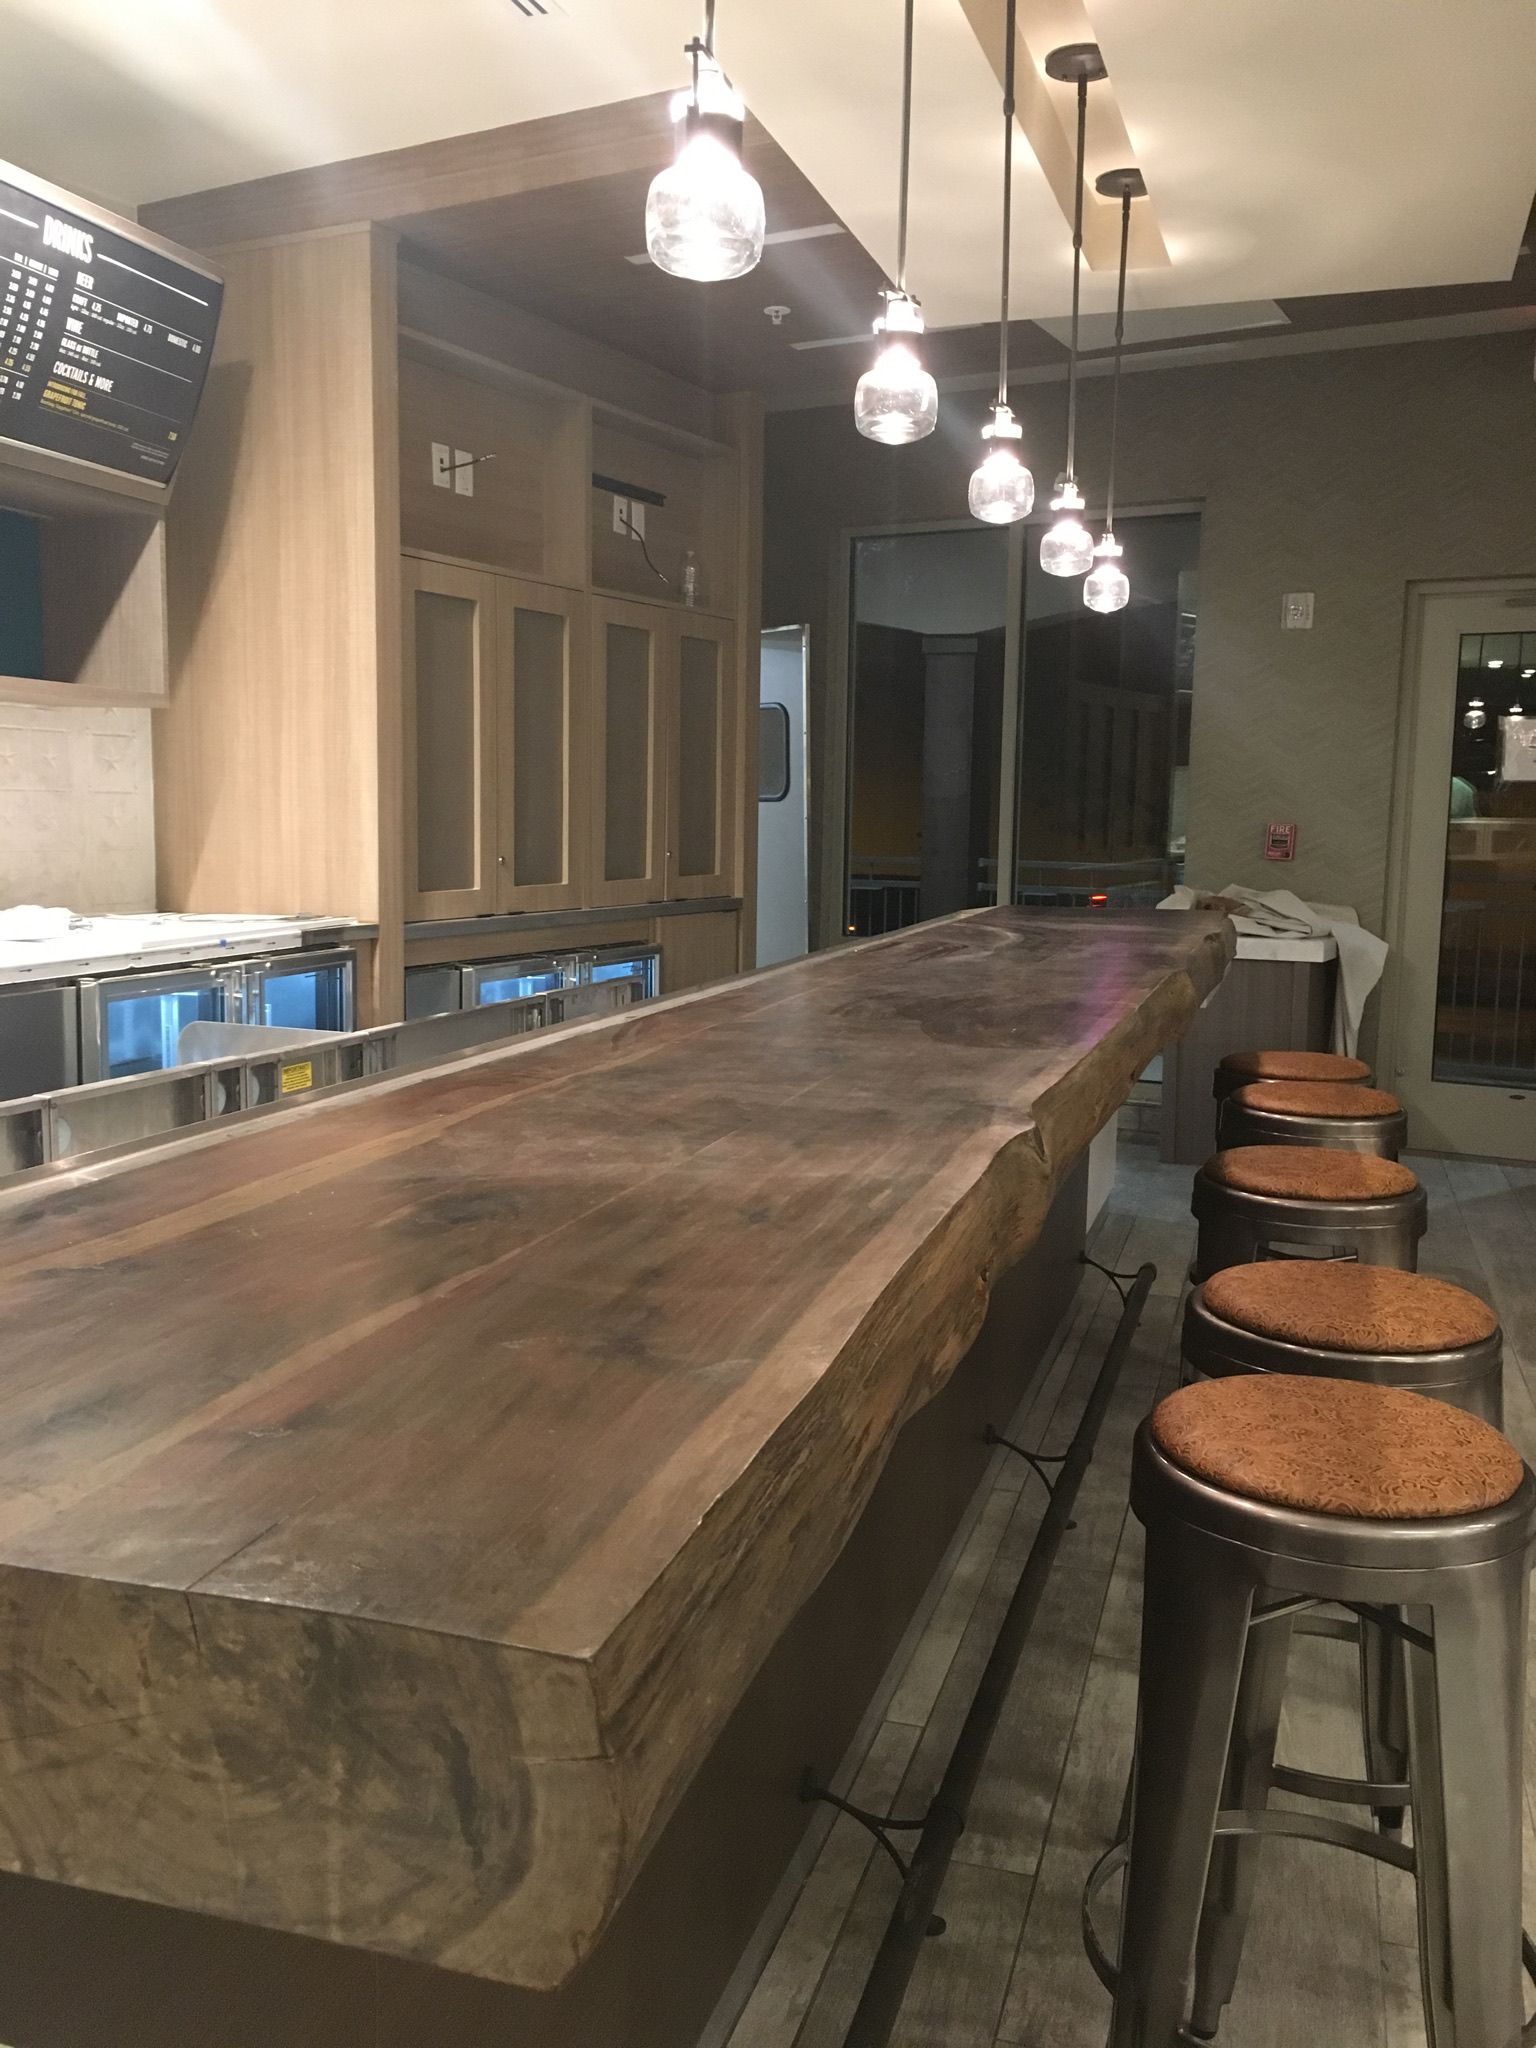 Live Edge Cedar Bar Top Of 15 Long X 5 Thick And 28 Deep I Produced The Finish Utilizing A Mix Of Natural Ele Live Edge Bar Kitchen Redesign Fine Furniture